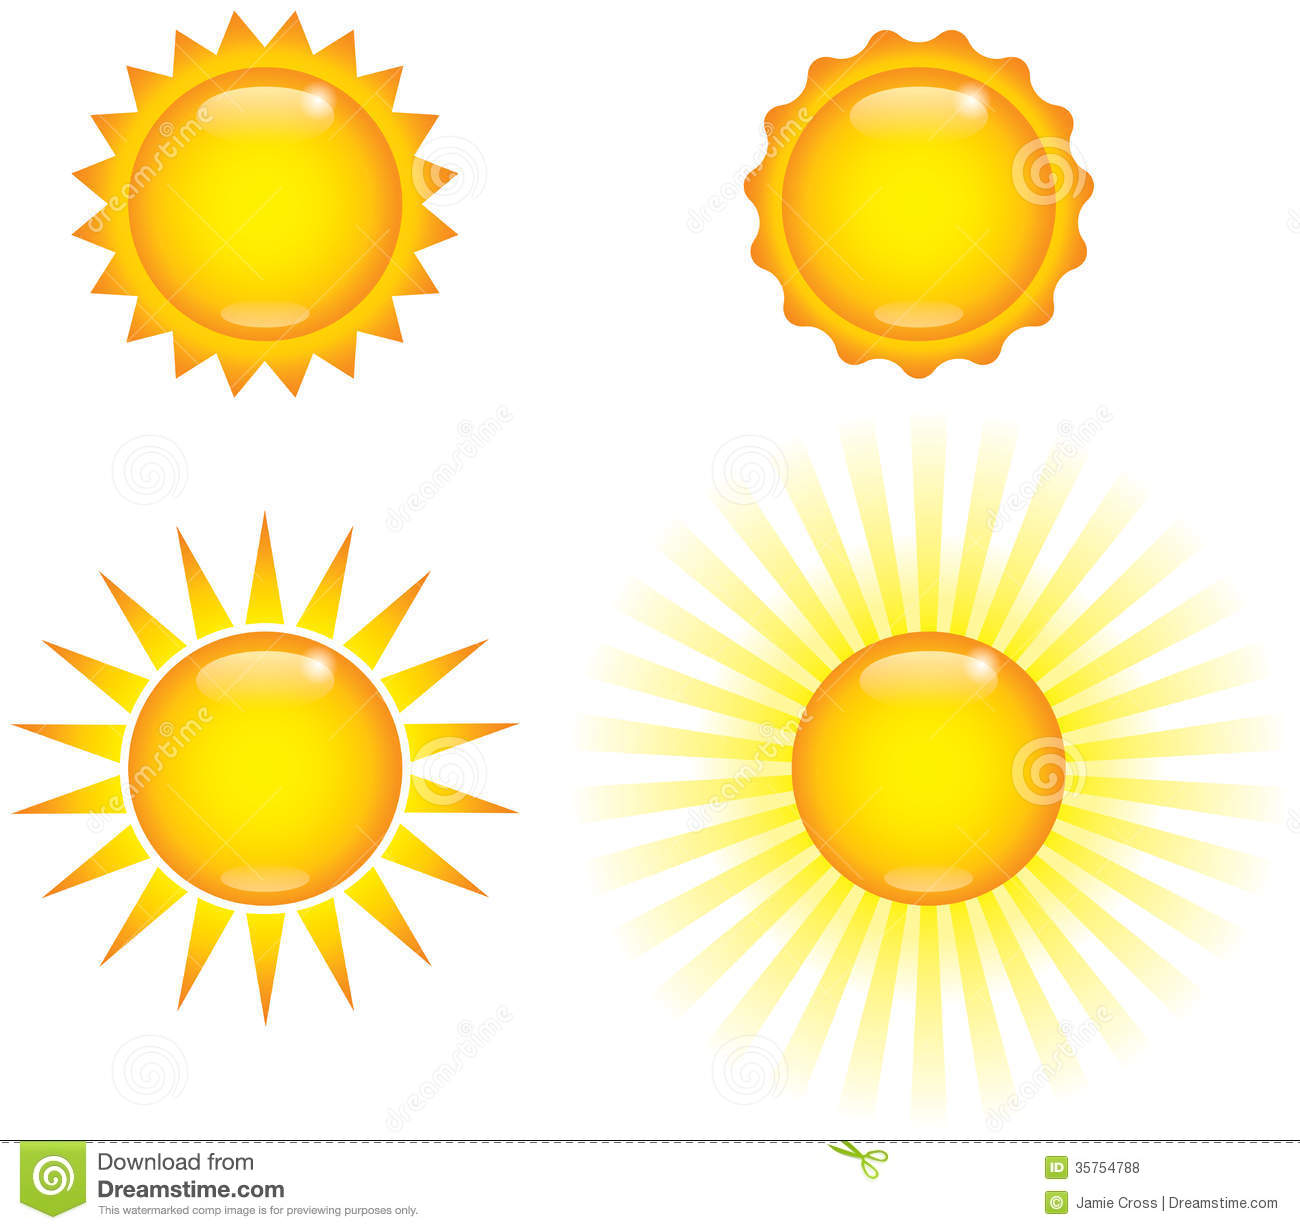 Shiny Suns Royalty Free Stock Photos - Image: 35754788